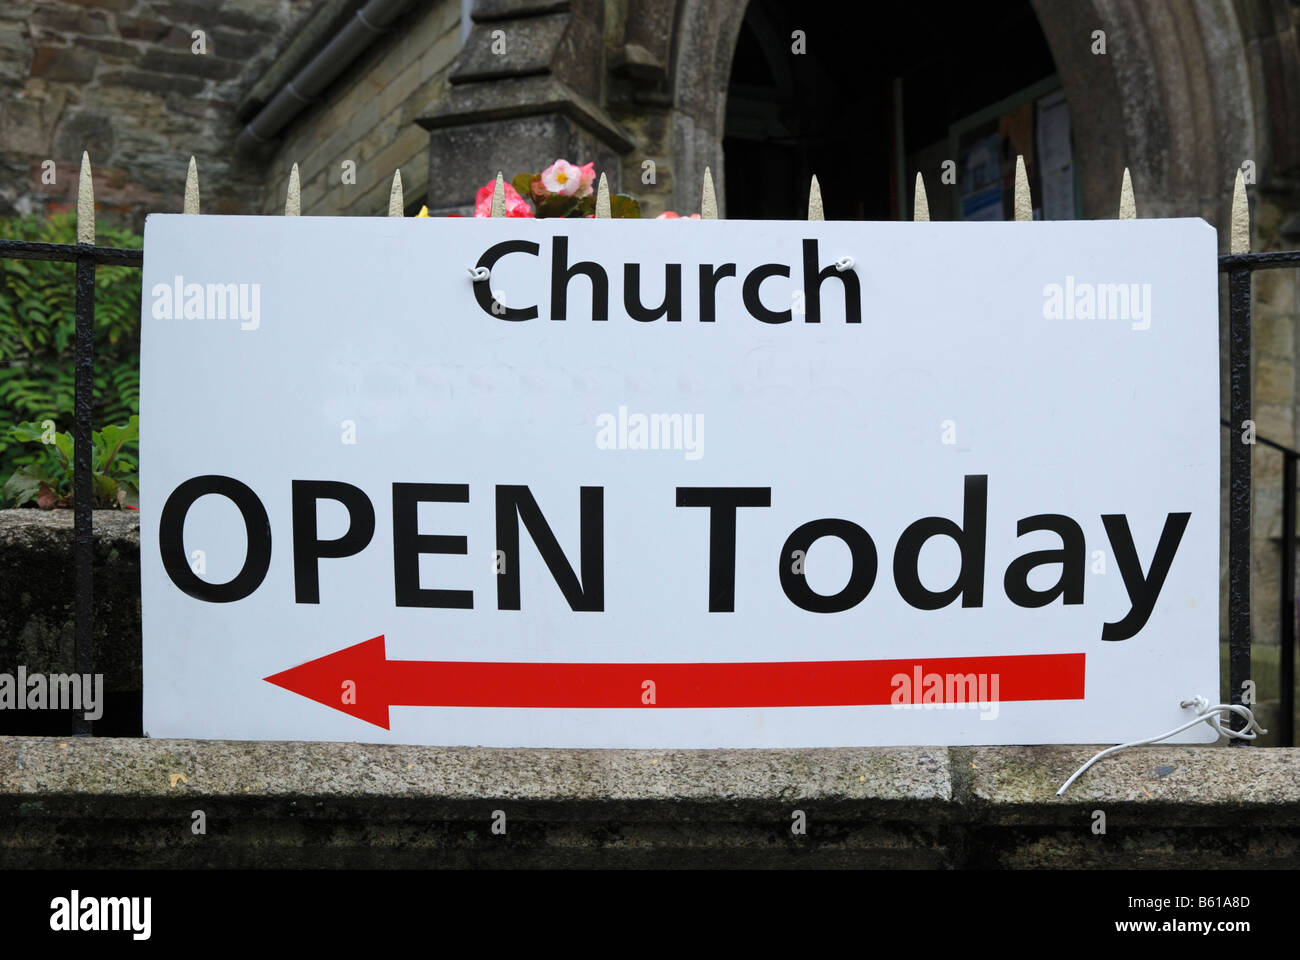 an open today sign outside a church - Stock Image